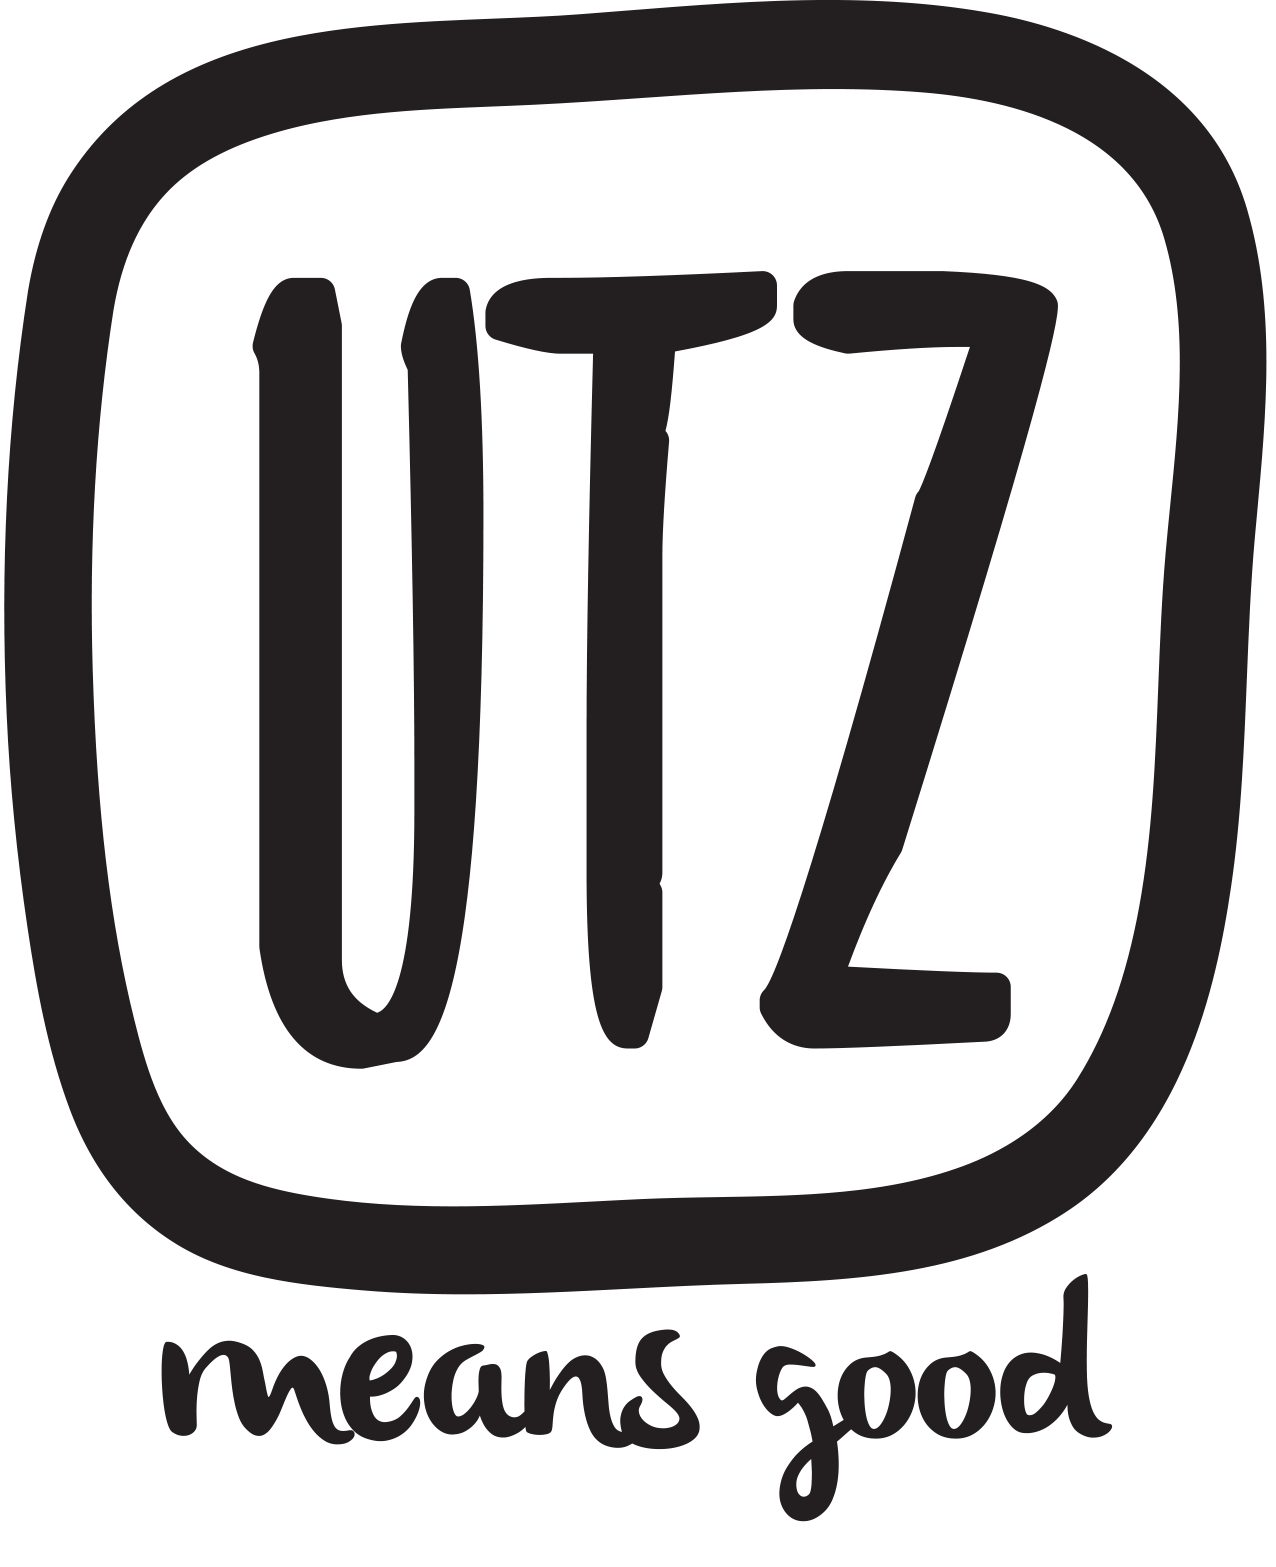 UTZ Means Good